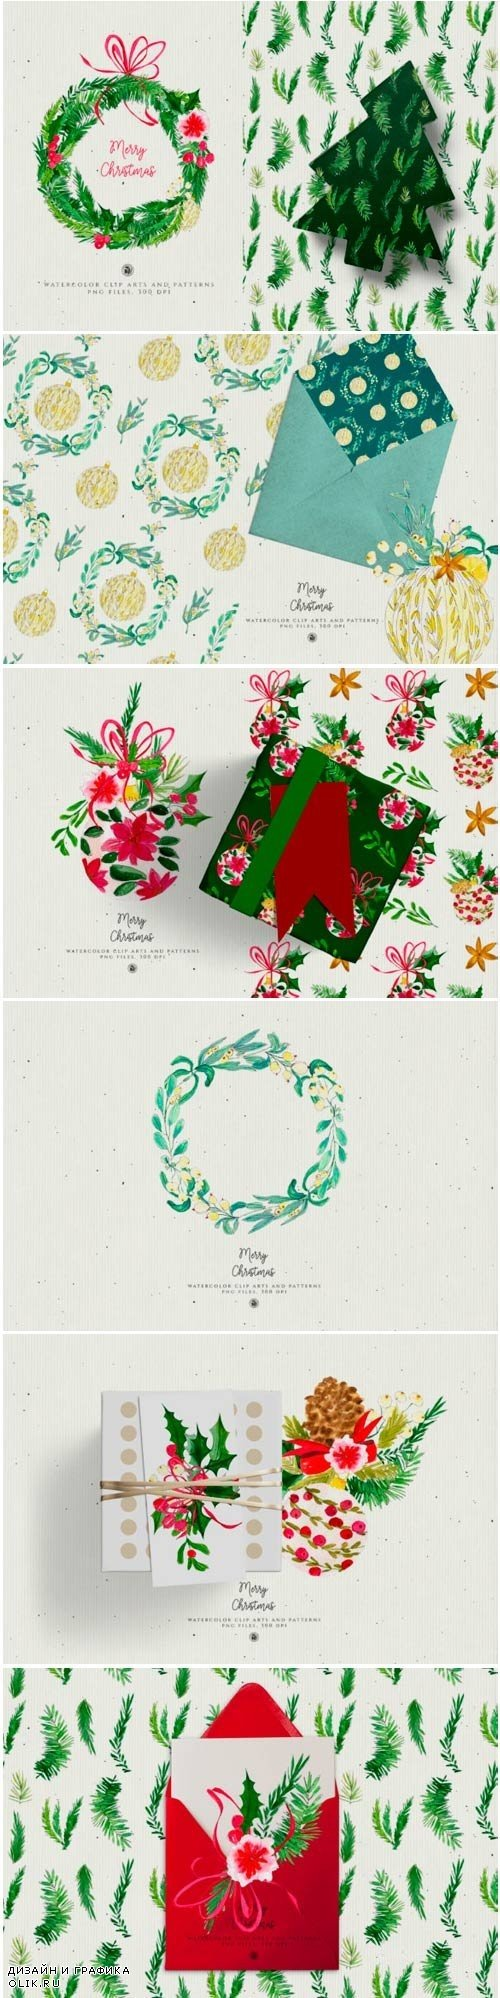 Christmas Watercolor Decorations - 4097212